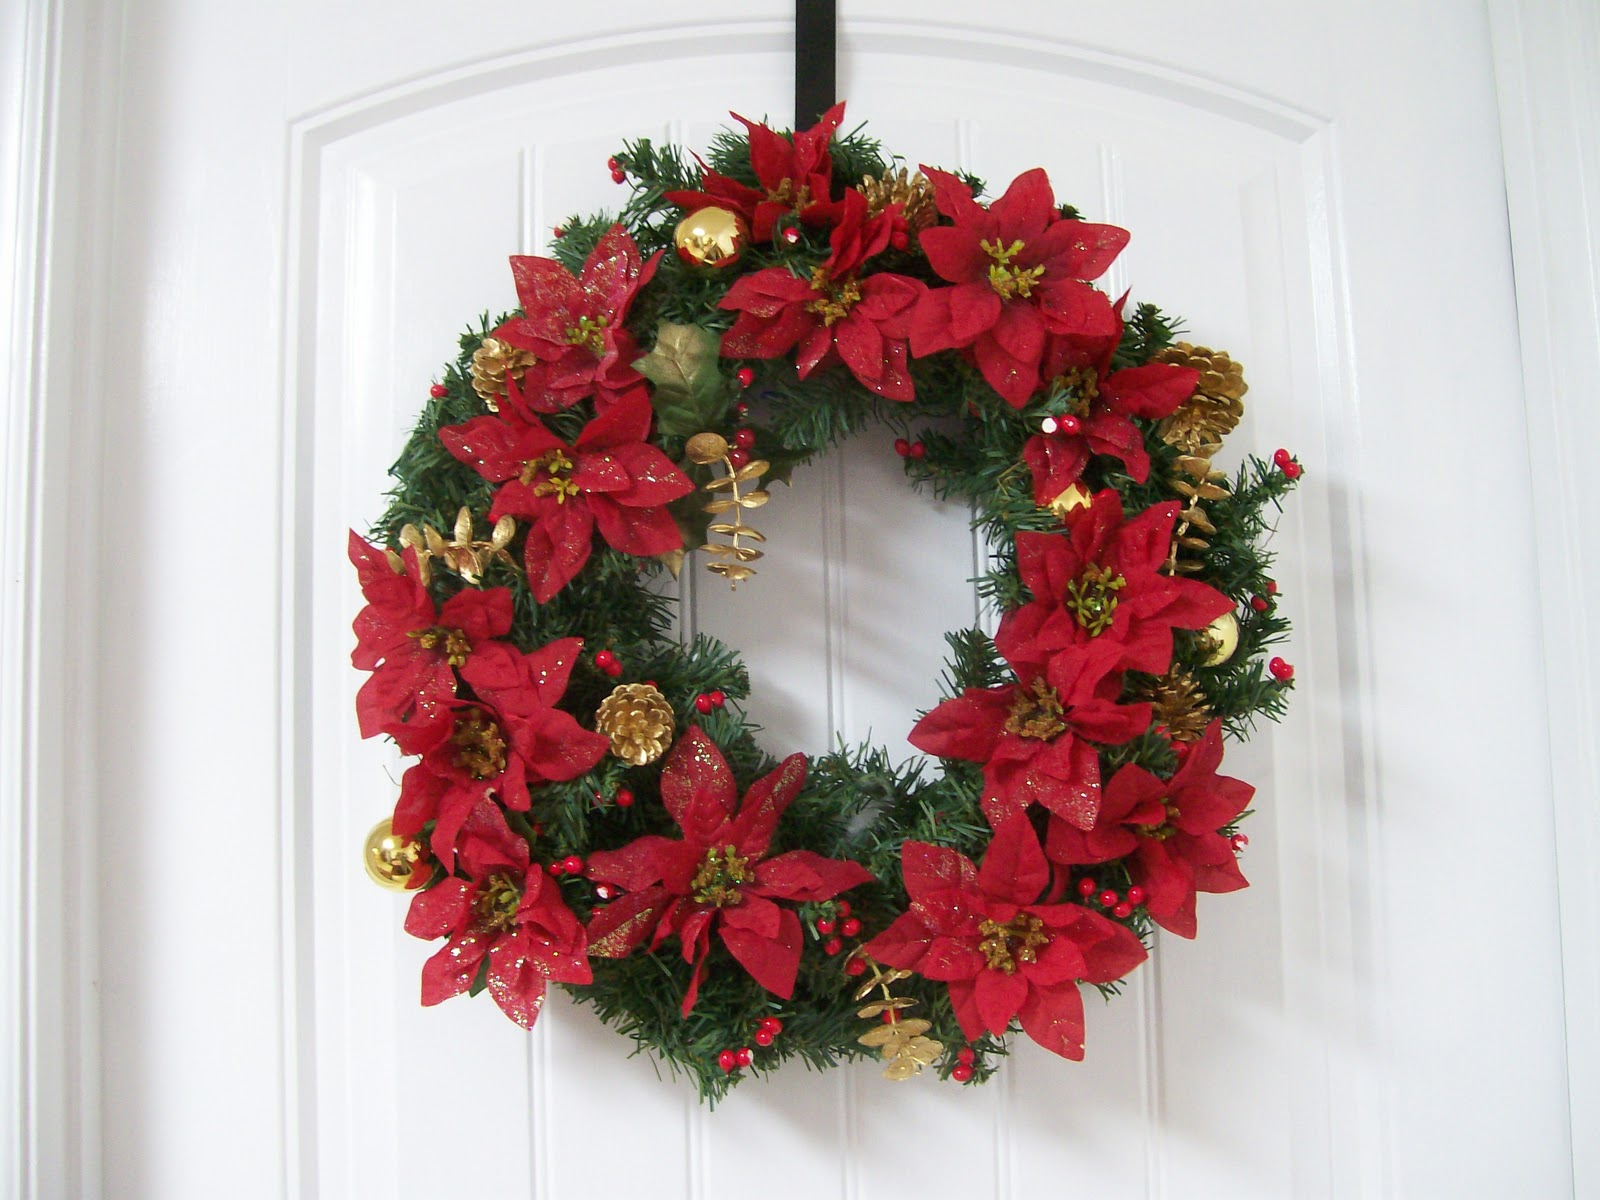 Christmas Wreaths Widescreen - Wallpaper, High Definition ...